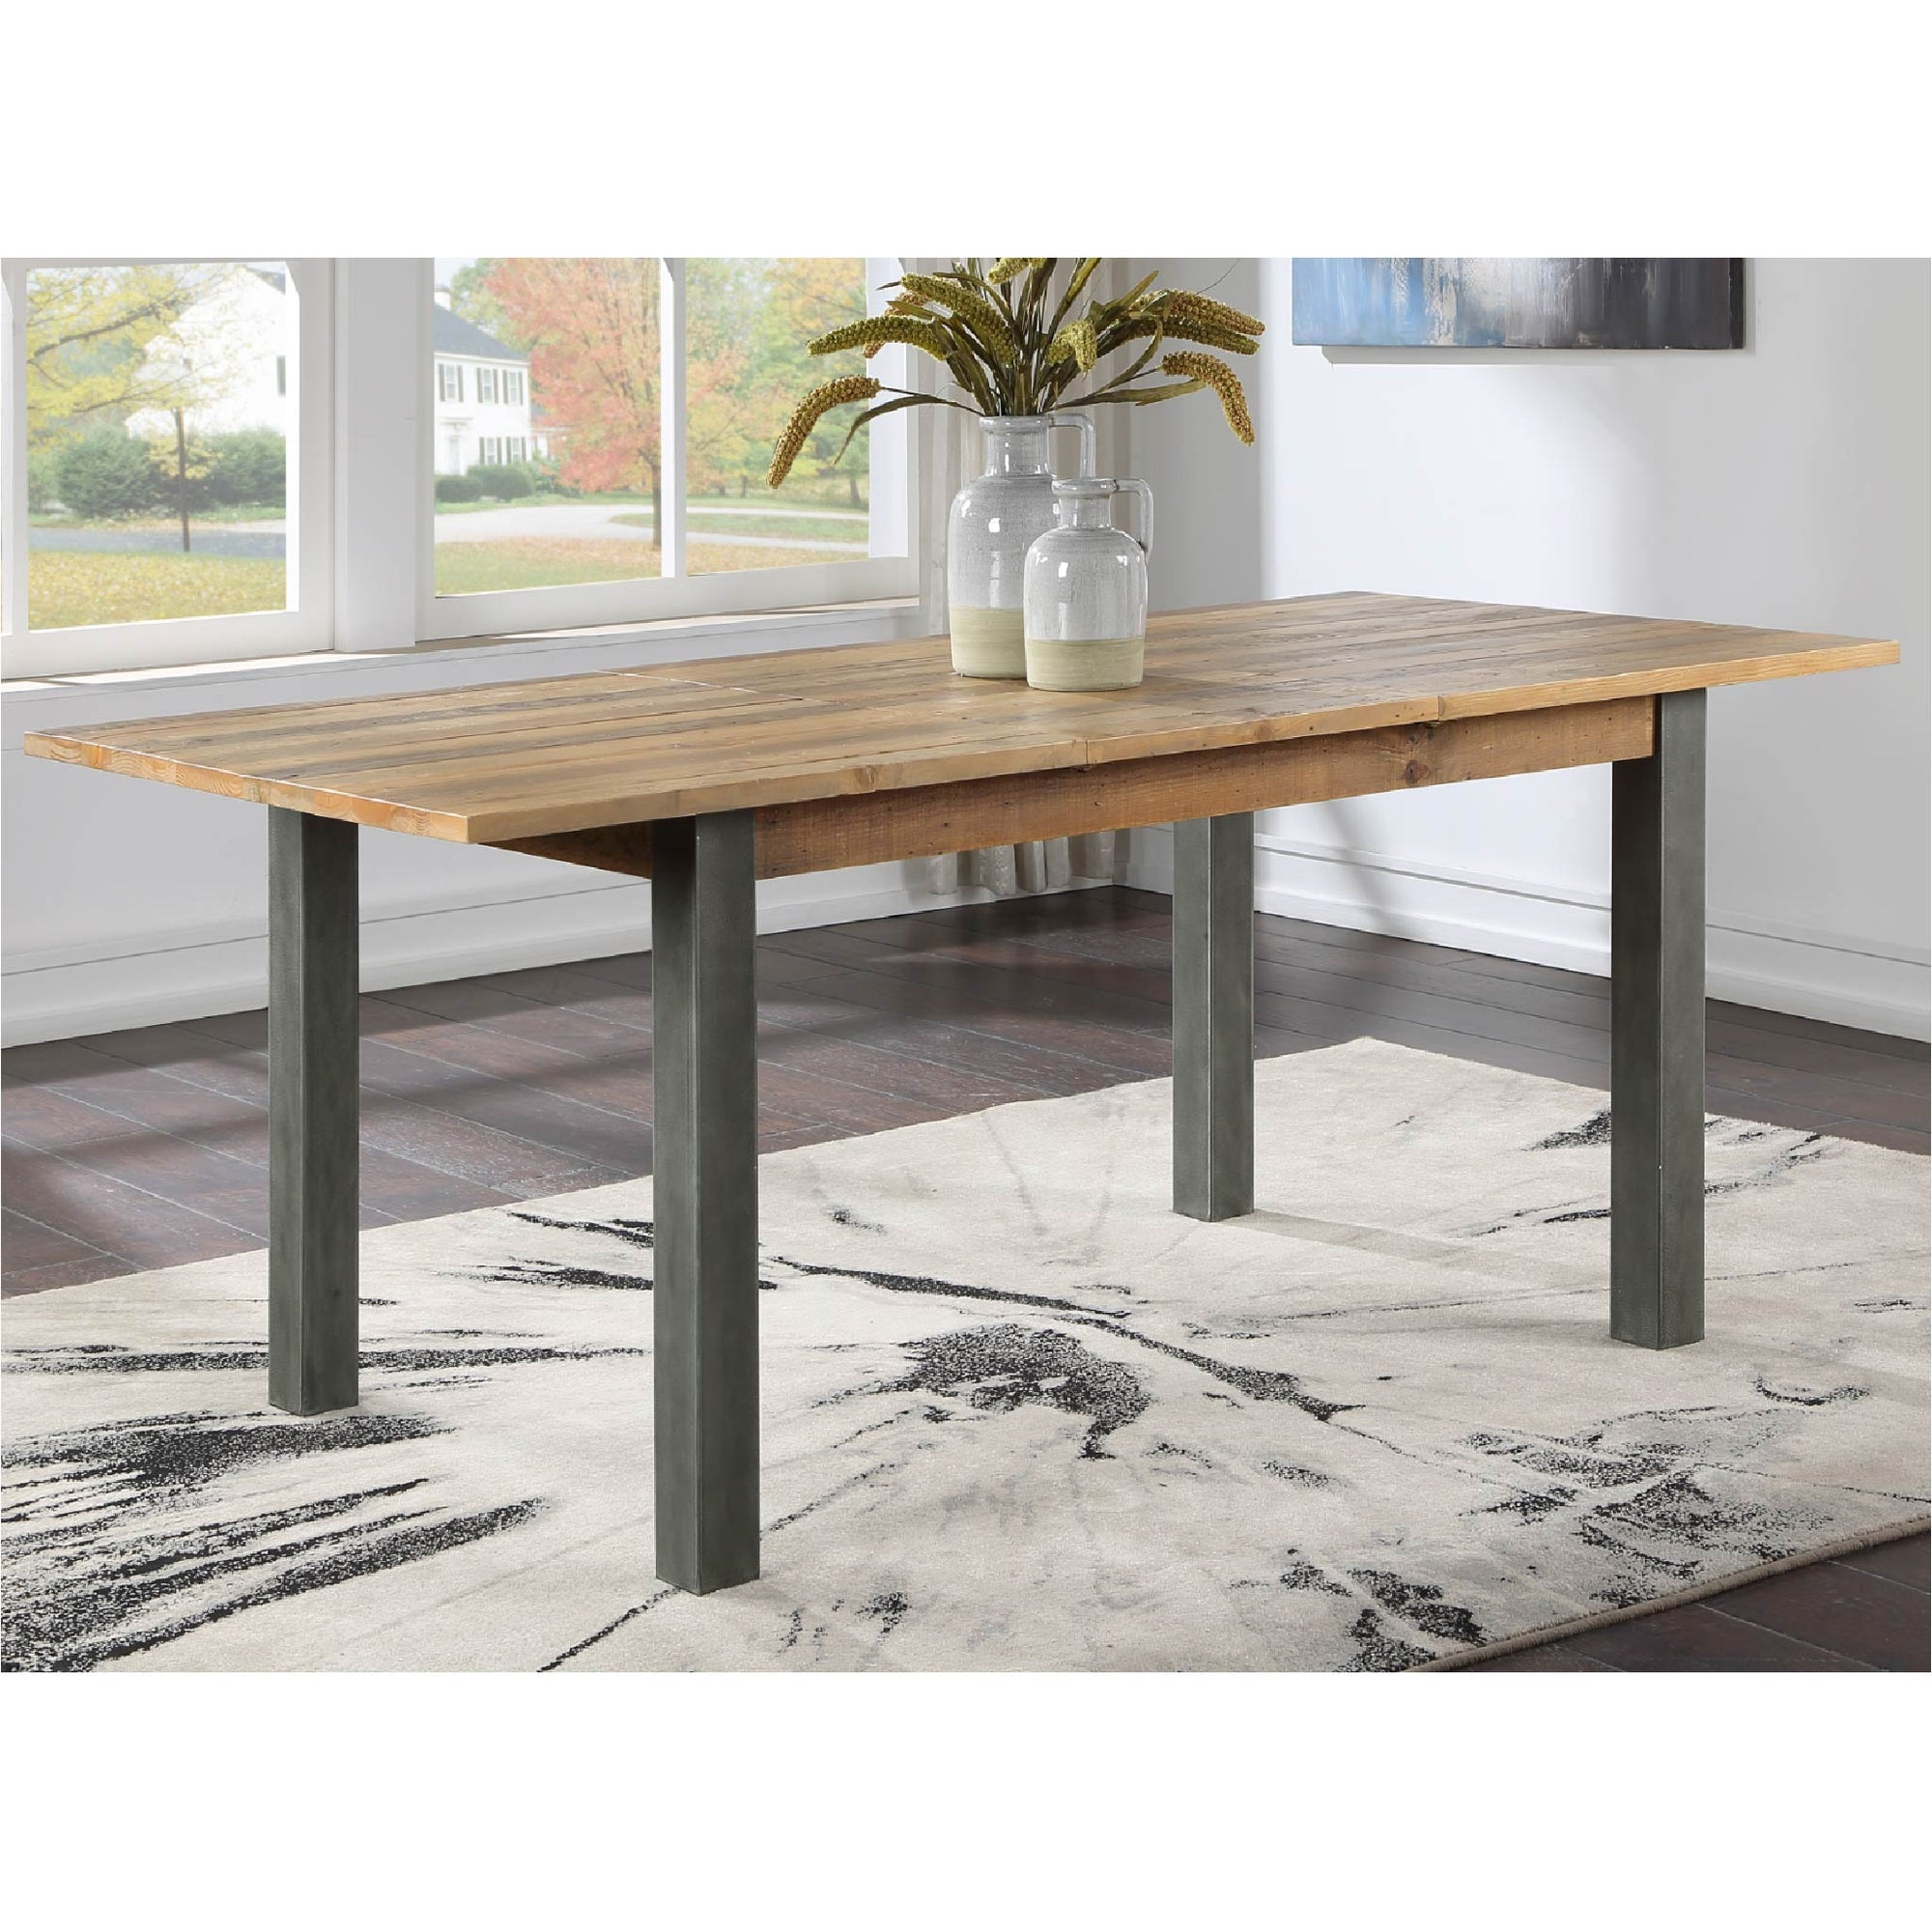 Urban Elegance Reclaimed Wood Extended Dining Table